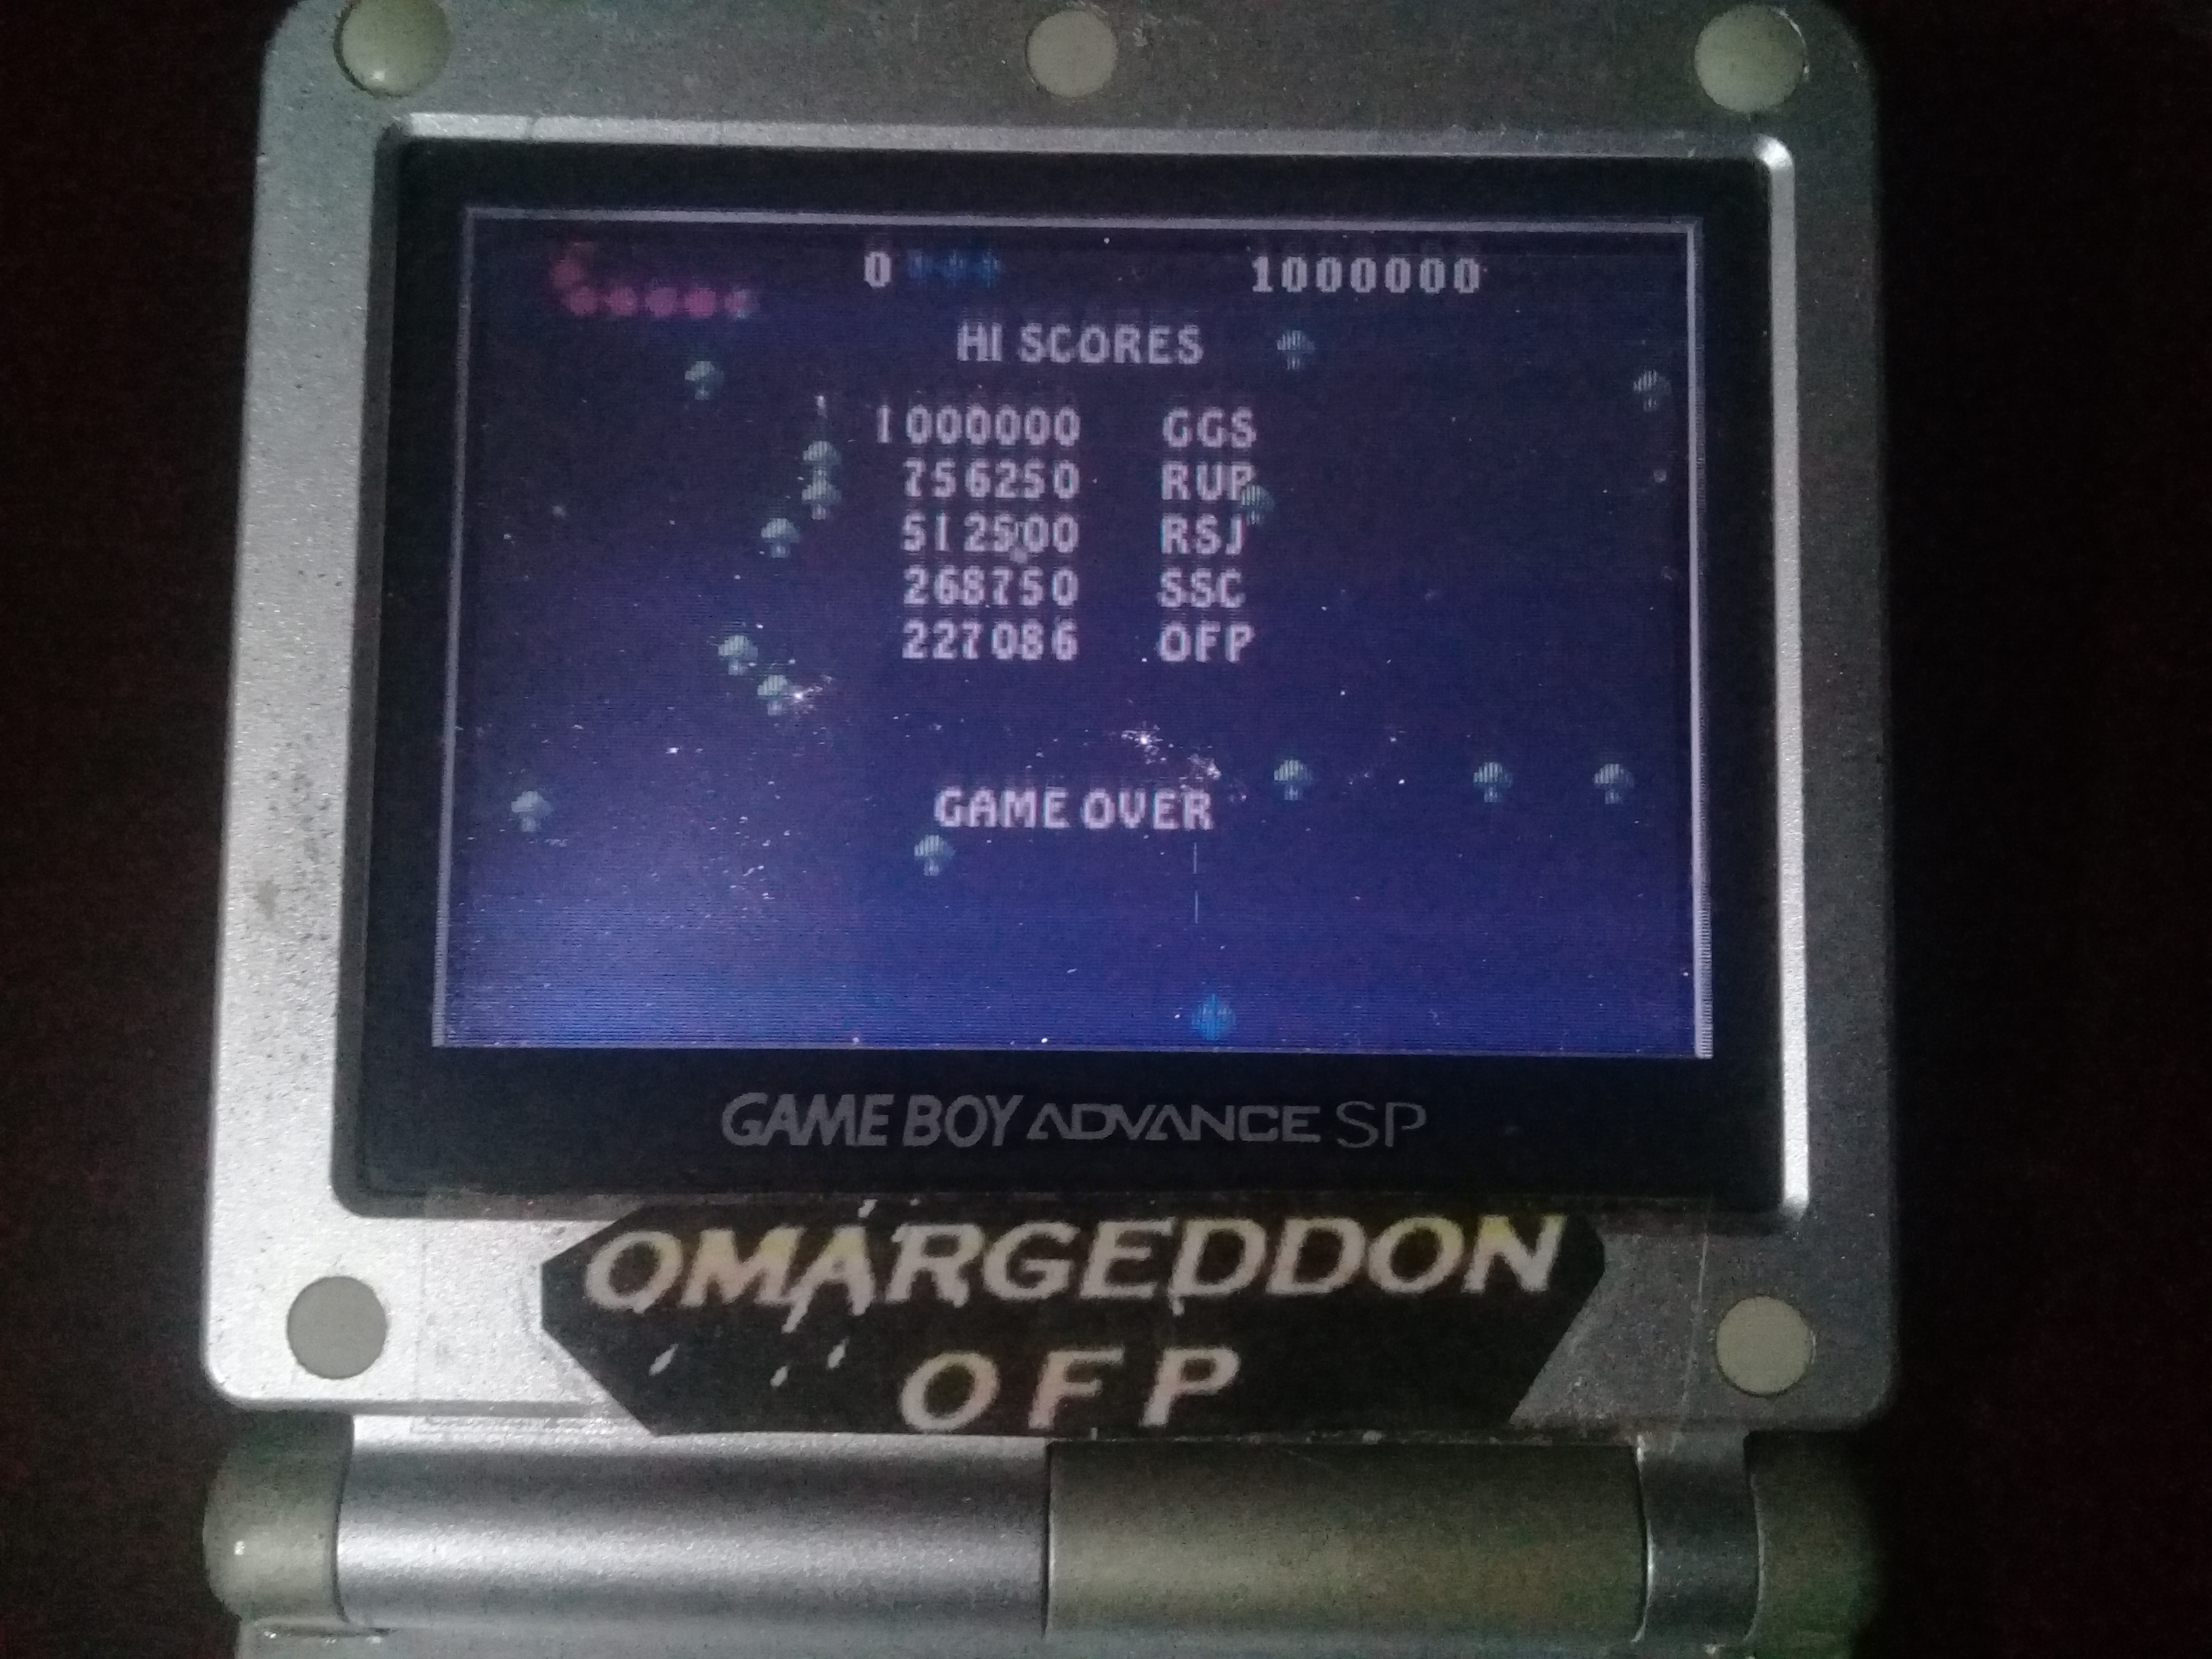 omargeddon: Centipede [Expert] (GBA) 227,086 points on 2020-04-19 00:58:19